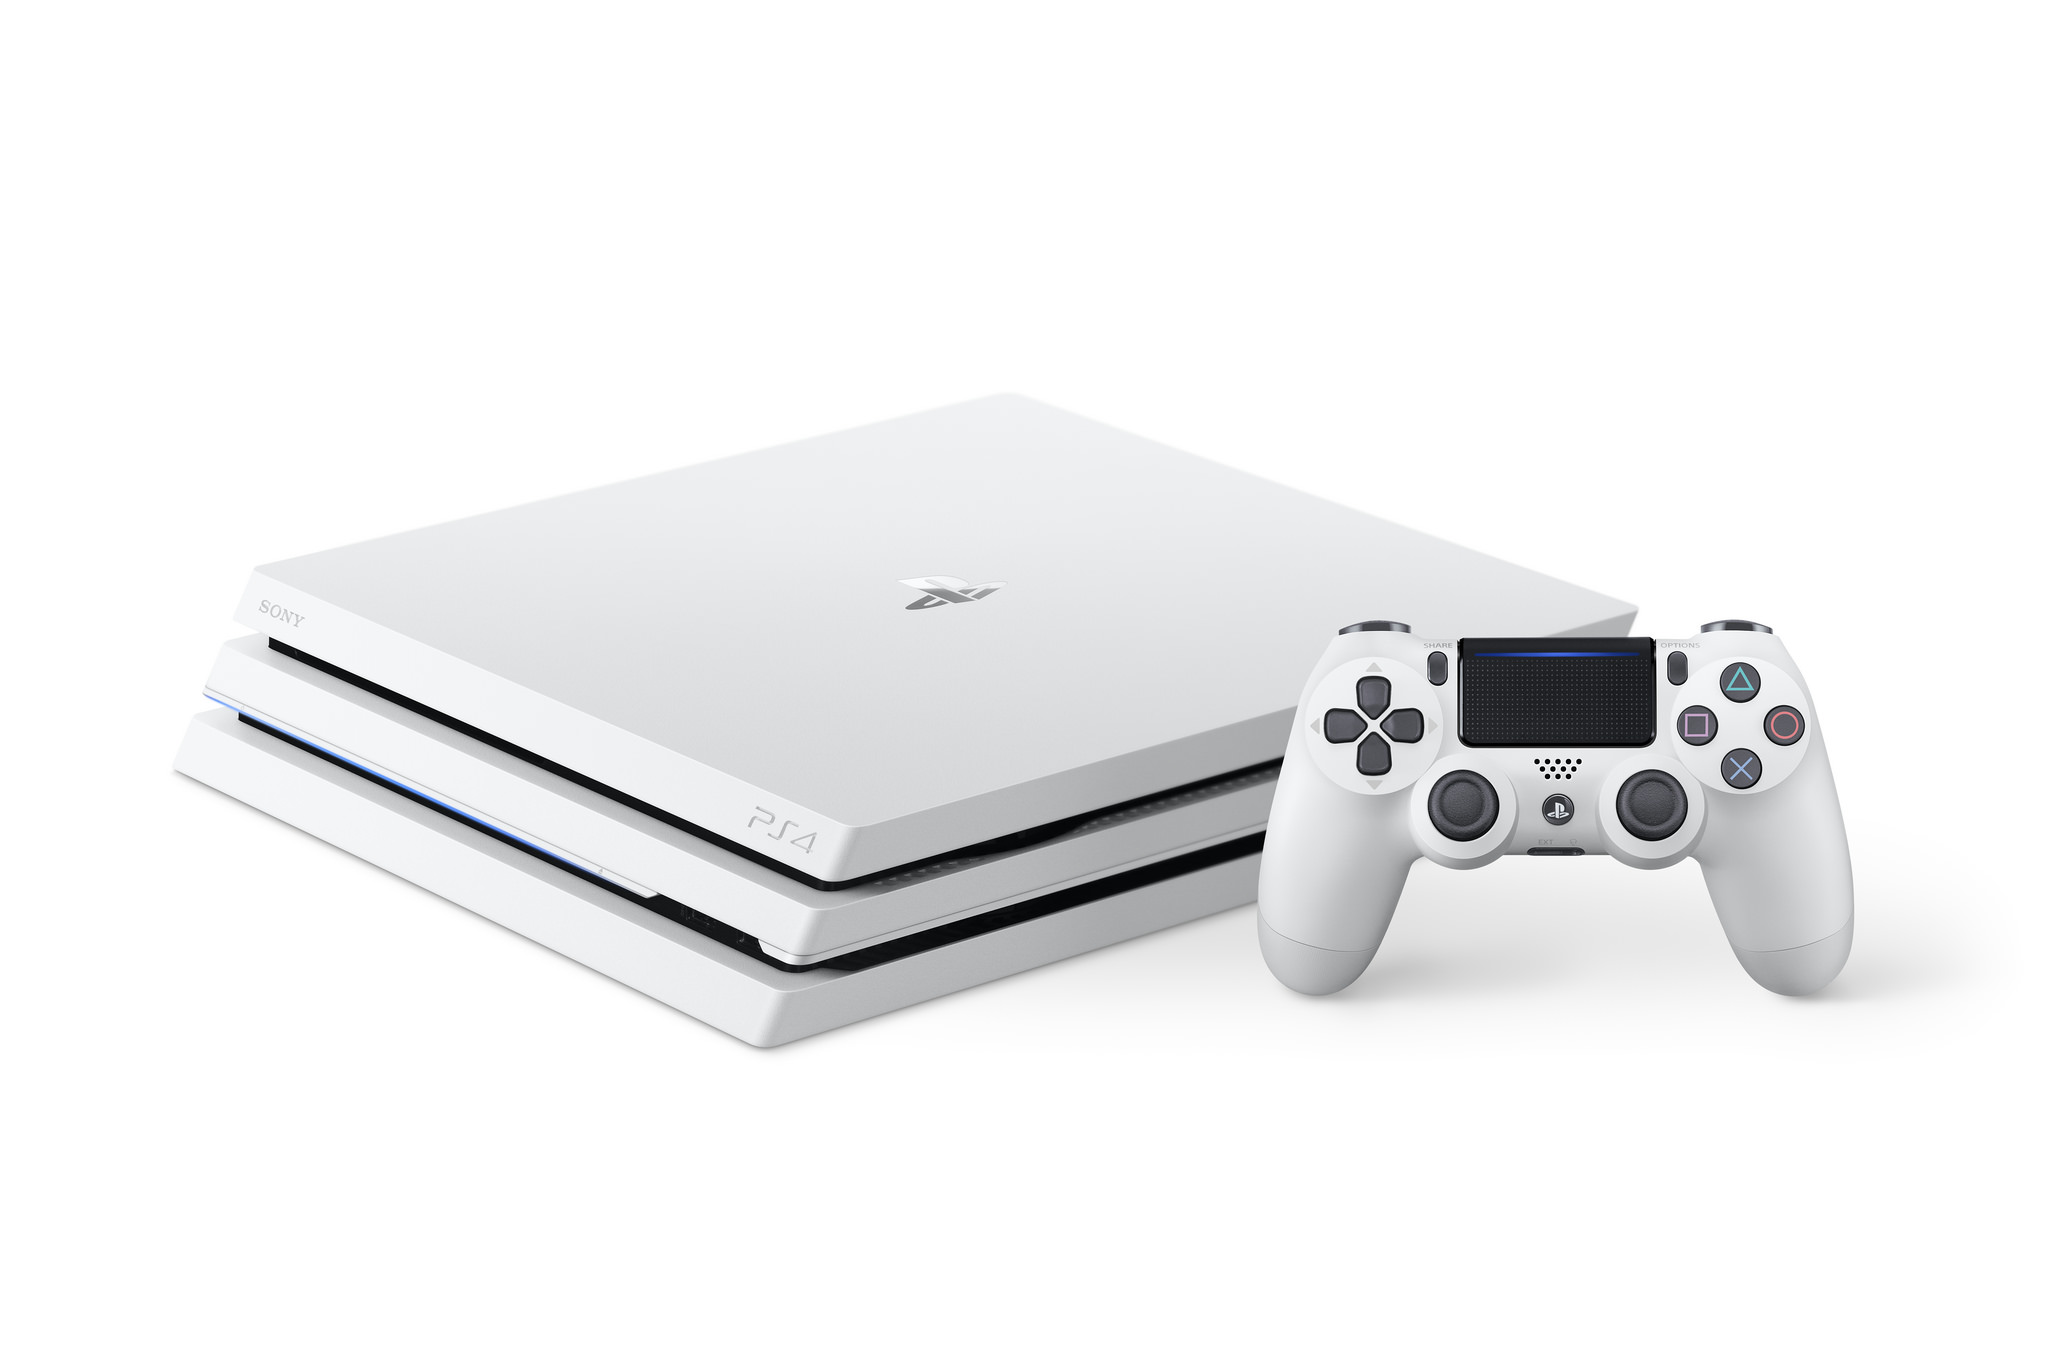 There's a white PS4 Pro, but it's exclusive to the Destiny 2